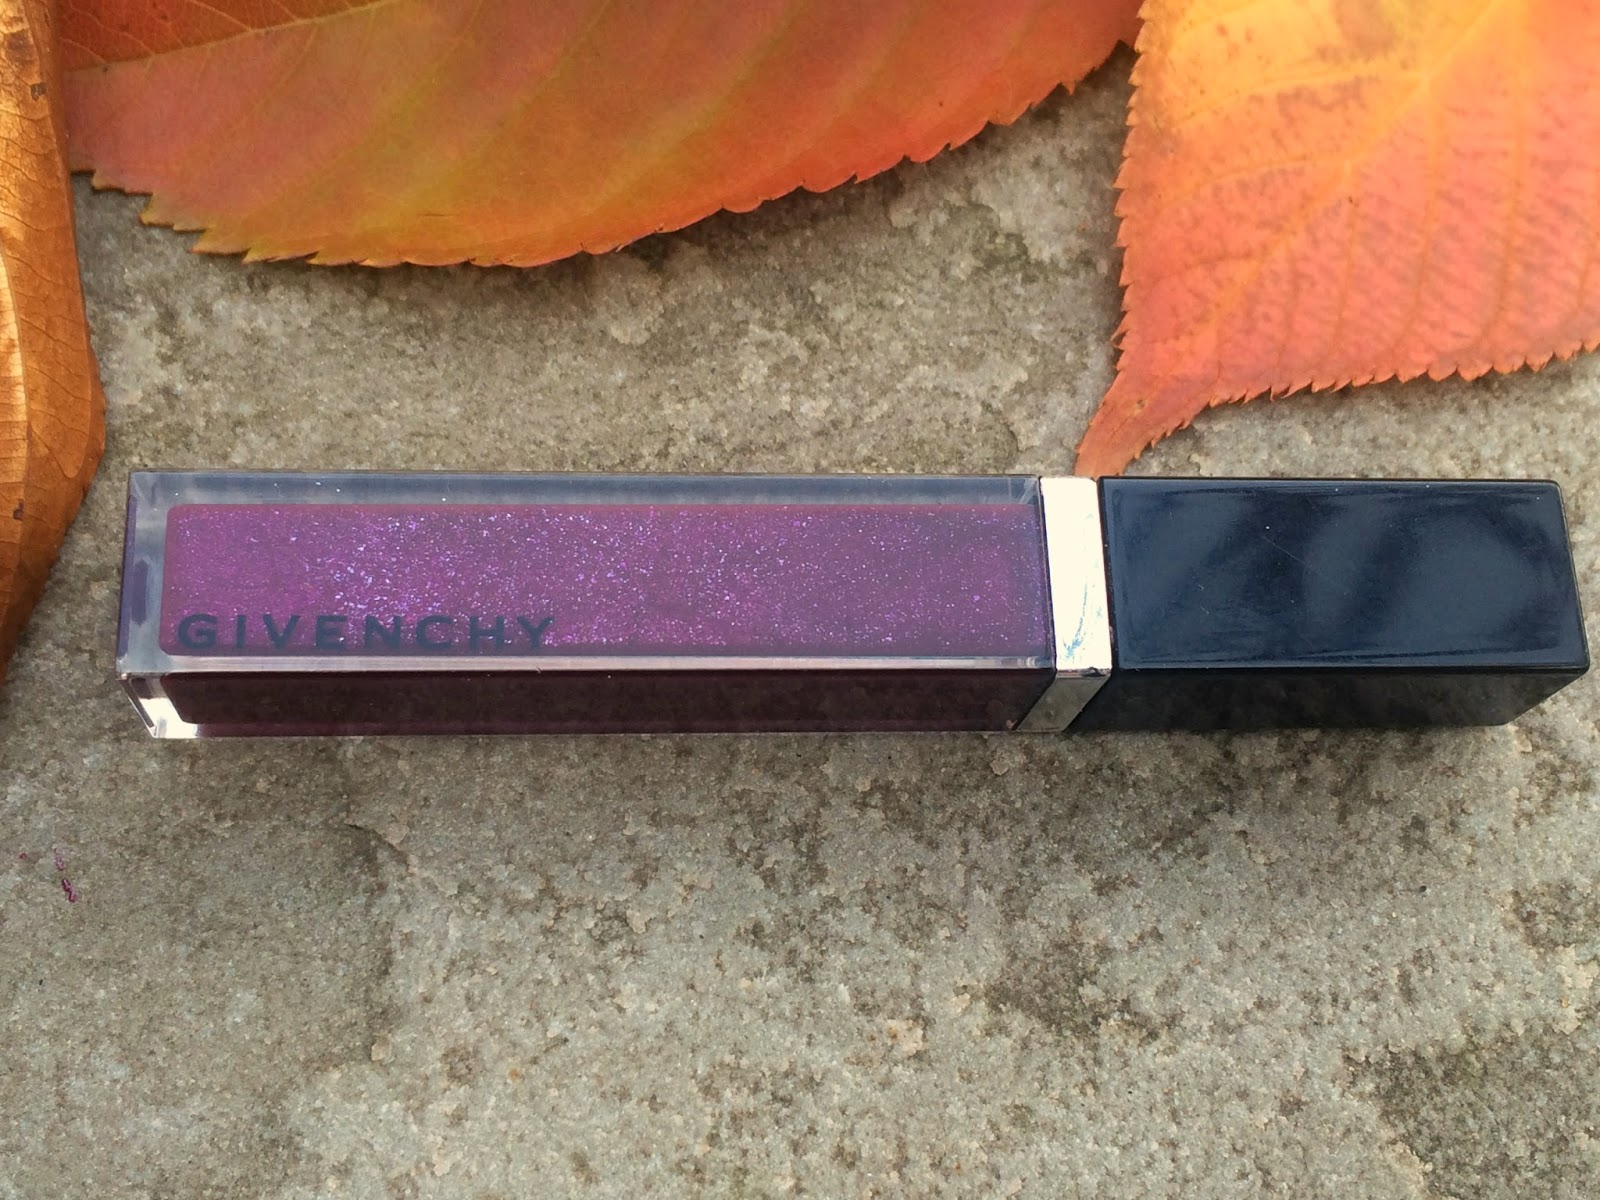 Givenchy Gloss Interdit Velvet Purple